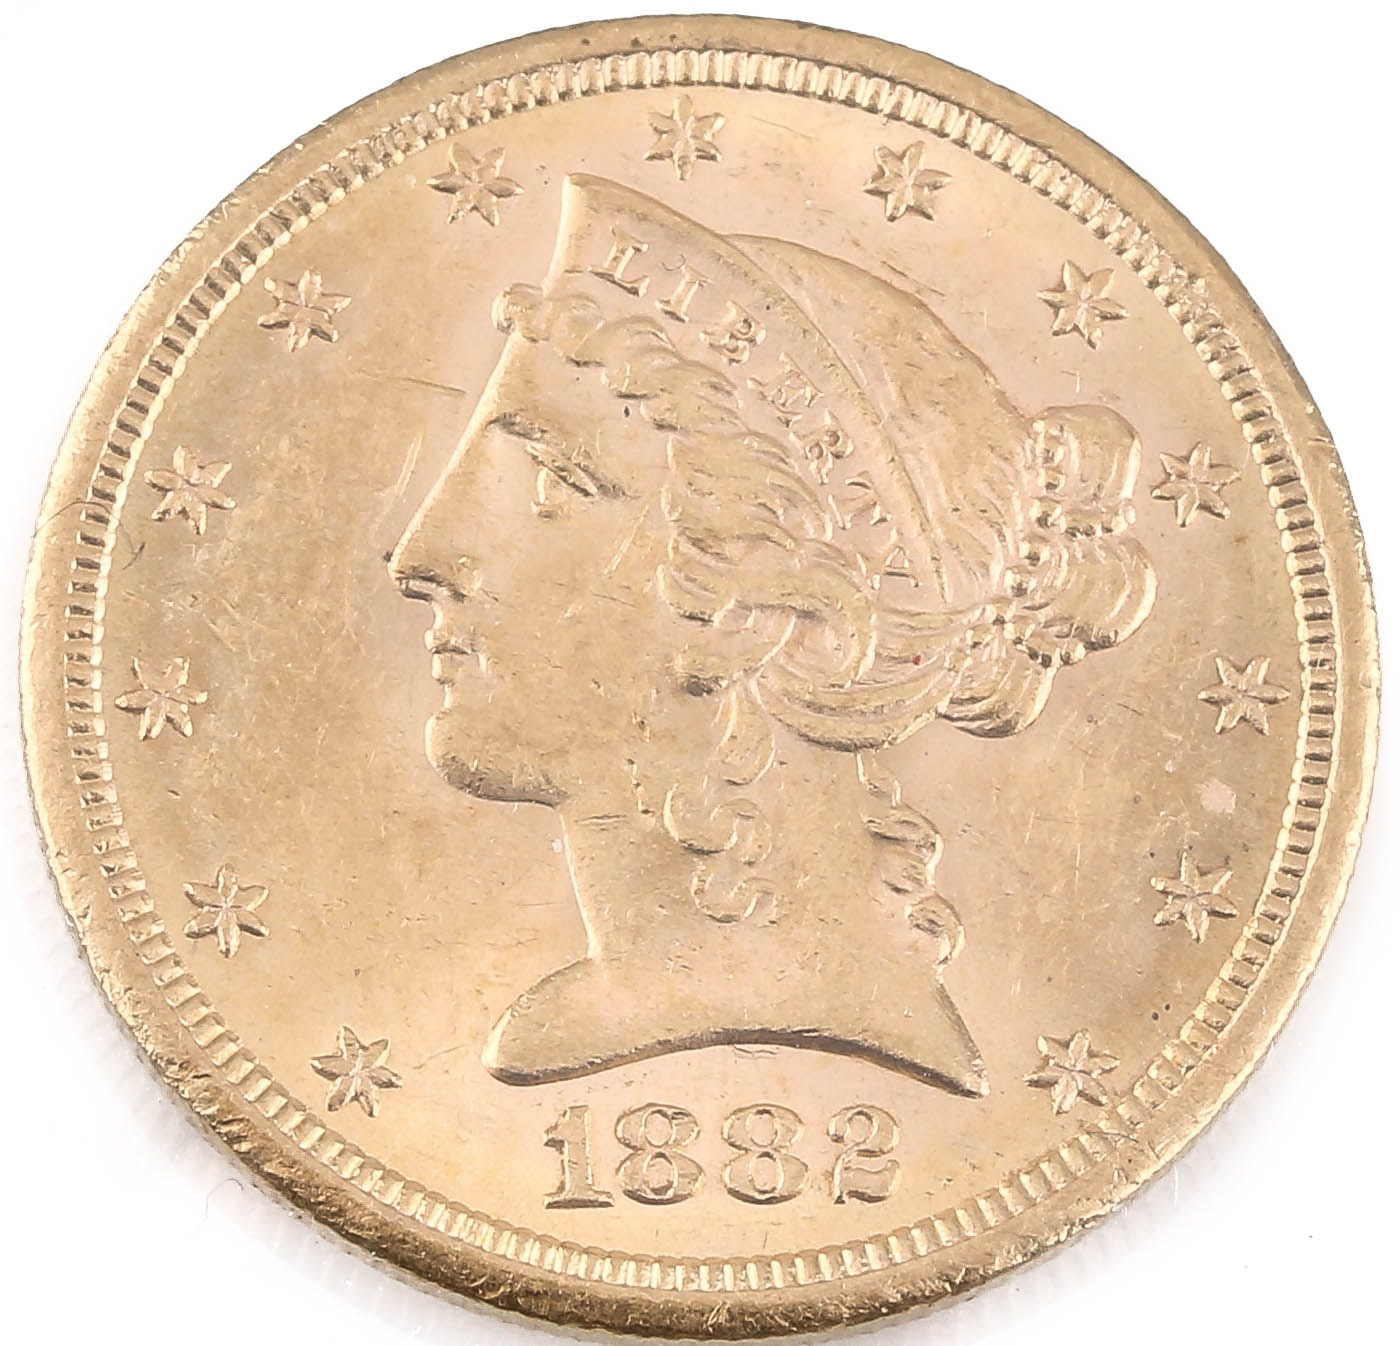 1882-S Liberty Head $5 Gold Coin